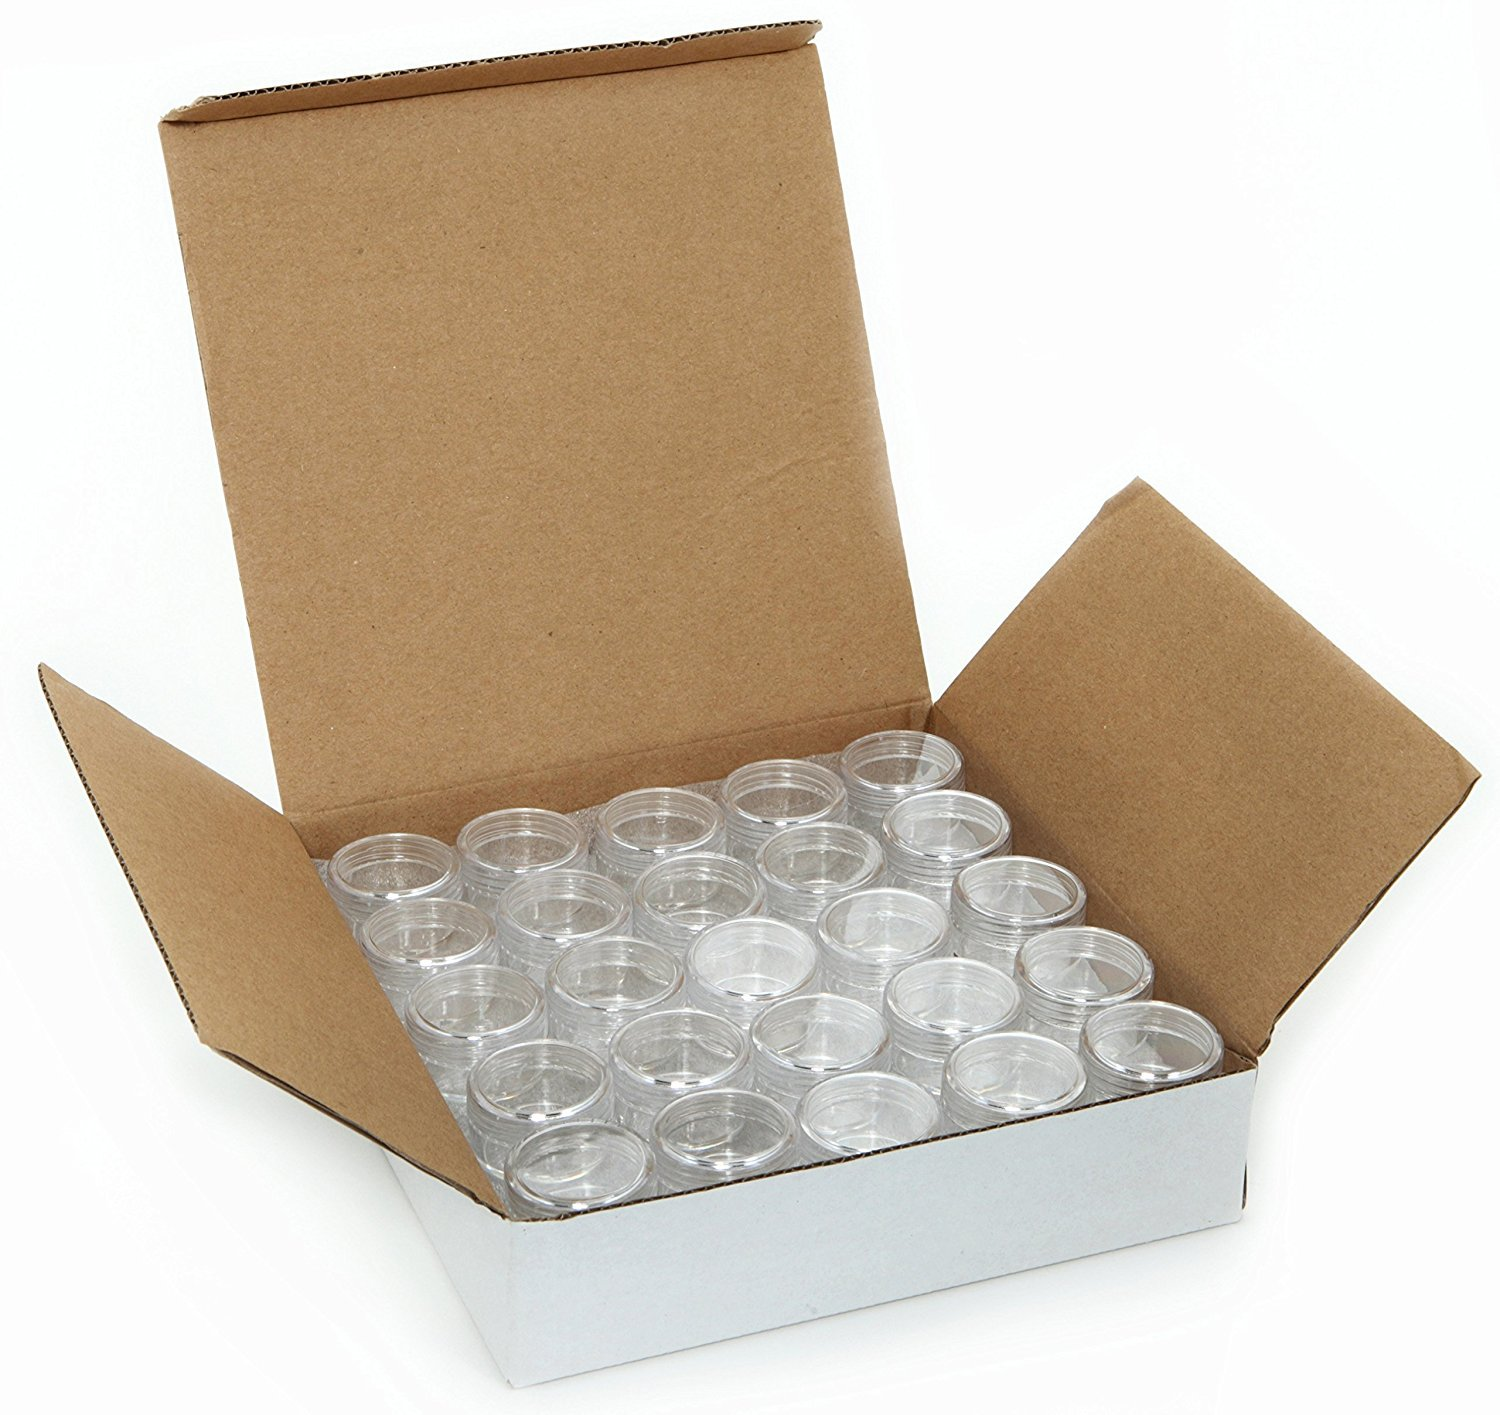 50 Empty, Clear, 3 Gram Plastic Pot Jars, Cosmetic Containers, with Lids. 3 Gram – 50pk, Clear